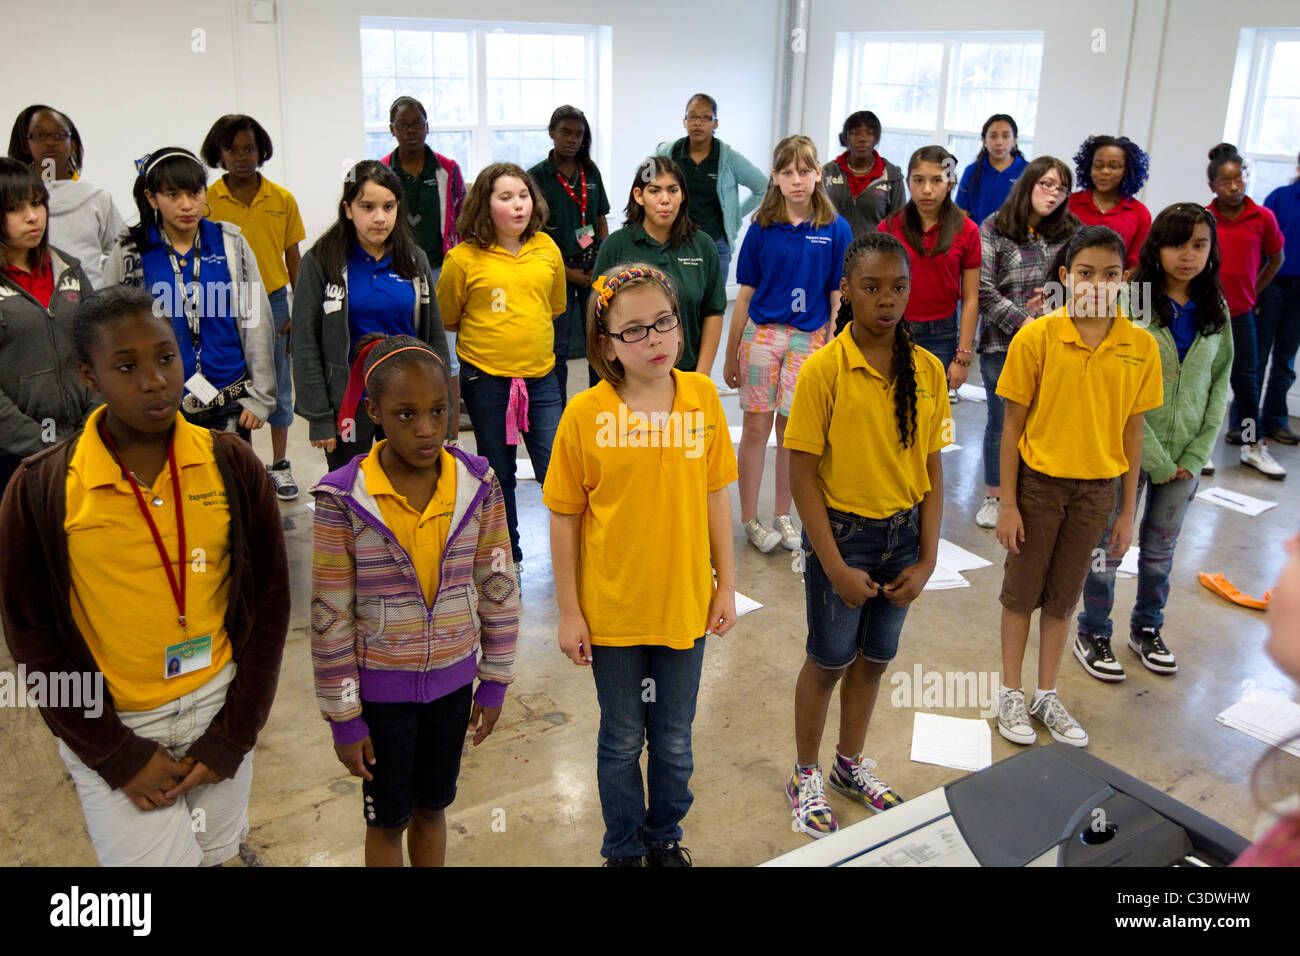 Middle School Students Warm Up In Choir Practice At